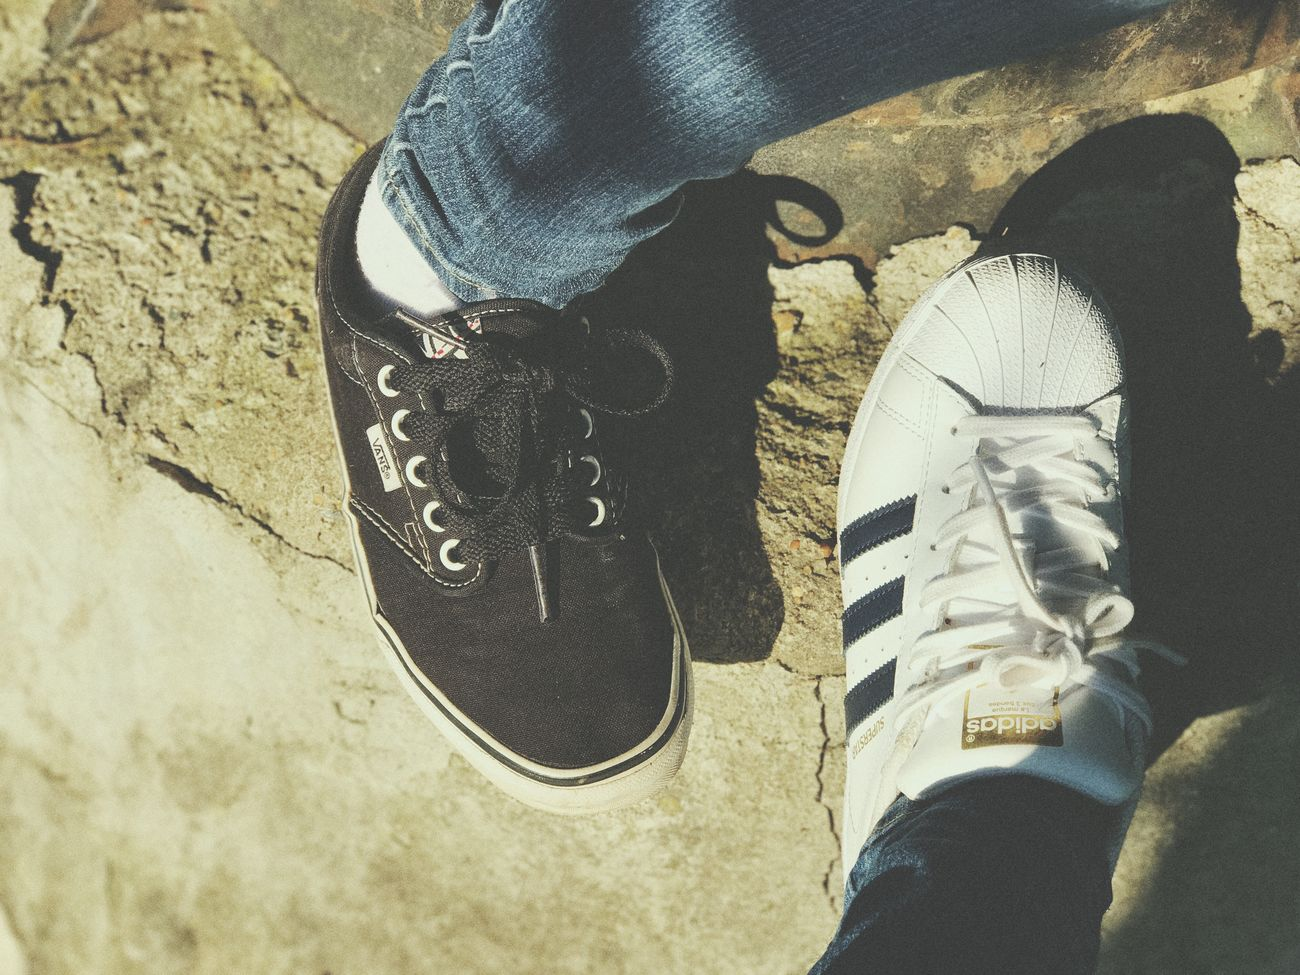 Shoe Low Section Human Leg Real People One Person Human Body Part Human Foot Canvas Shoe High Angle View Personal Perspective Standing Jeans Unrecognizable Person Shoelace Lifestyles Leisure Activity Sports Shoe Day Casual Clothing Sock